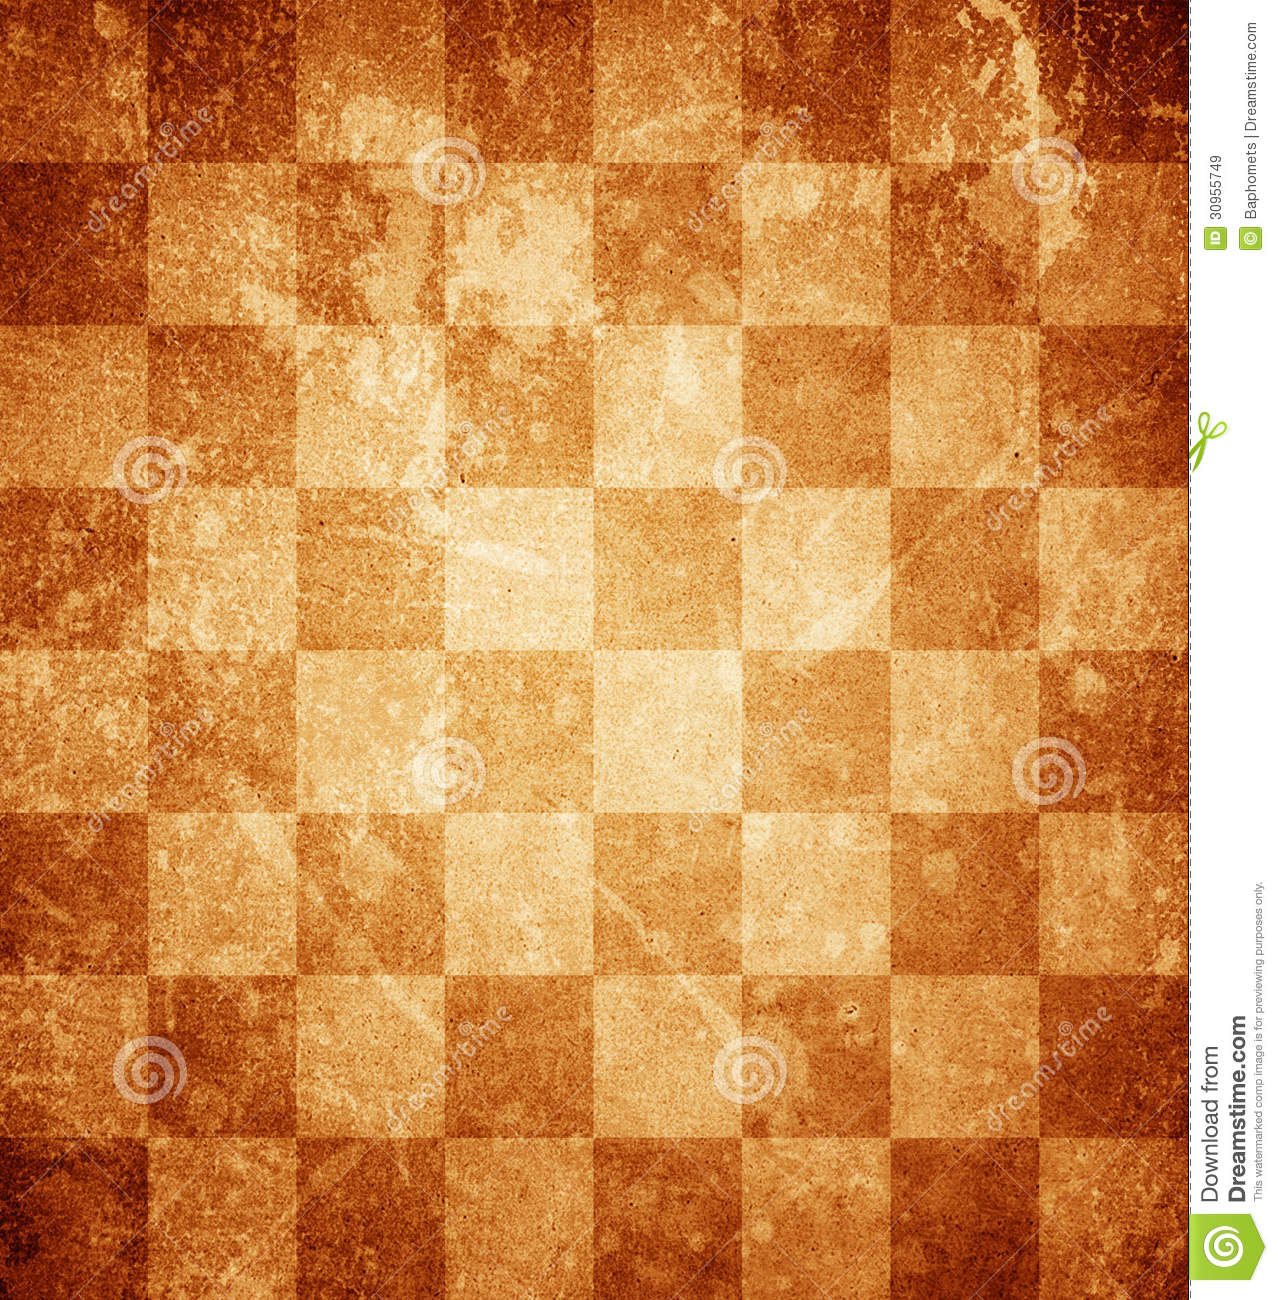 grunge paper checkerboard background royalty free stock checkerboard clip art free checkerboard clipart free